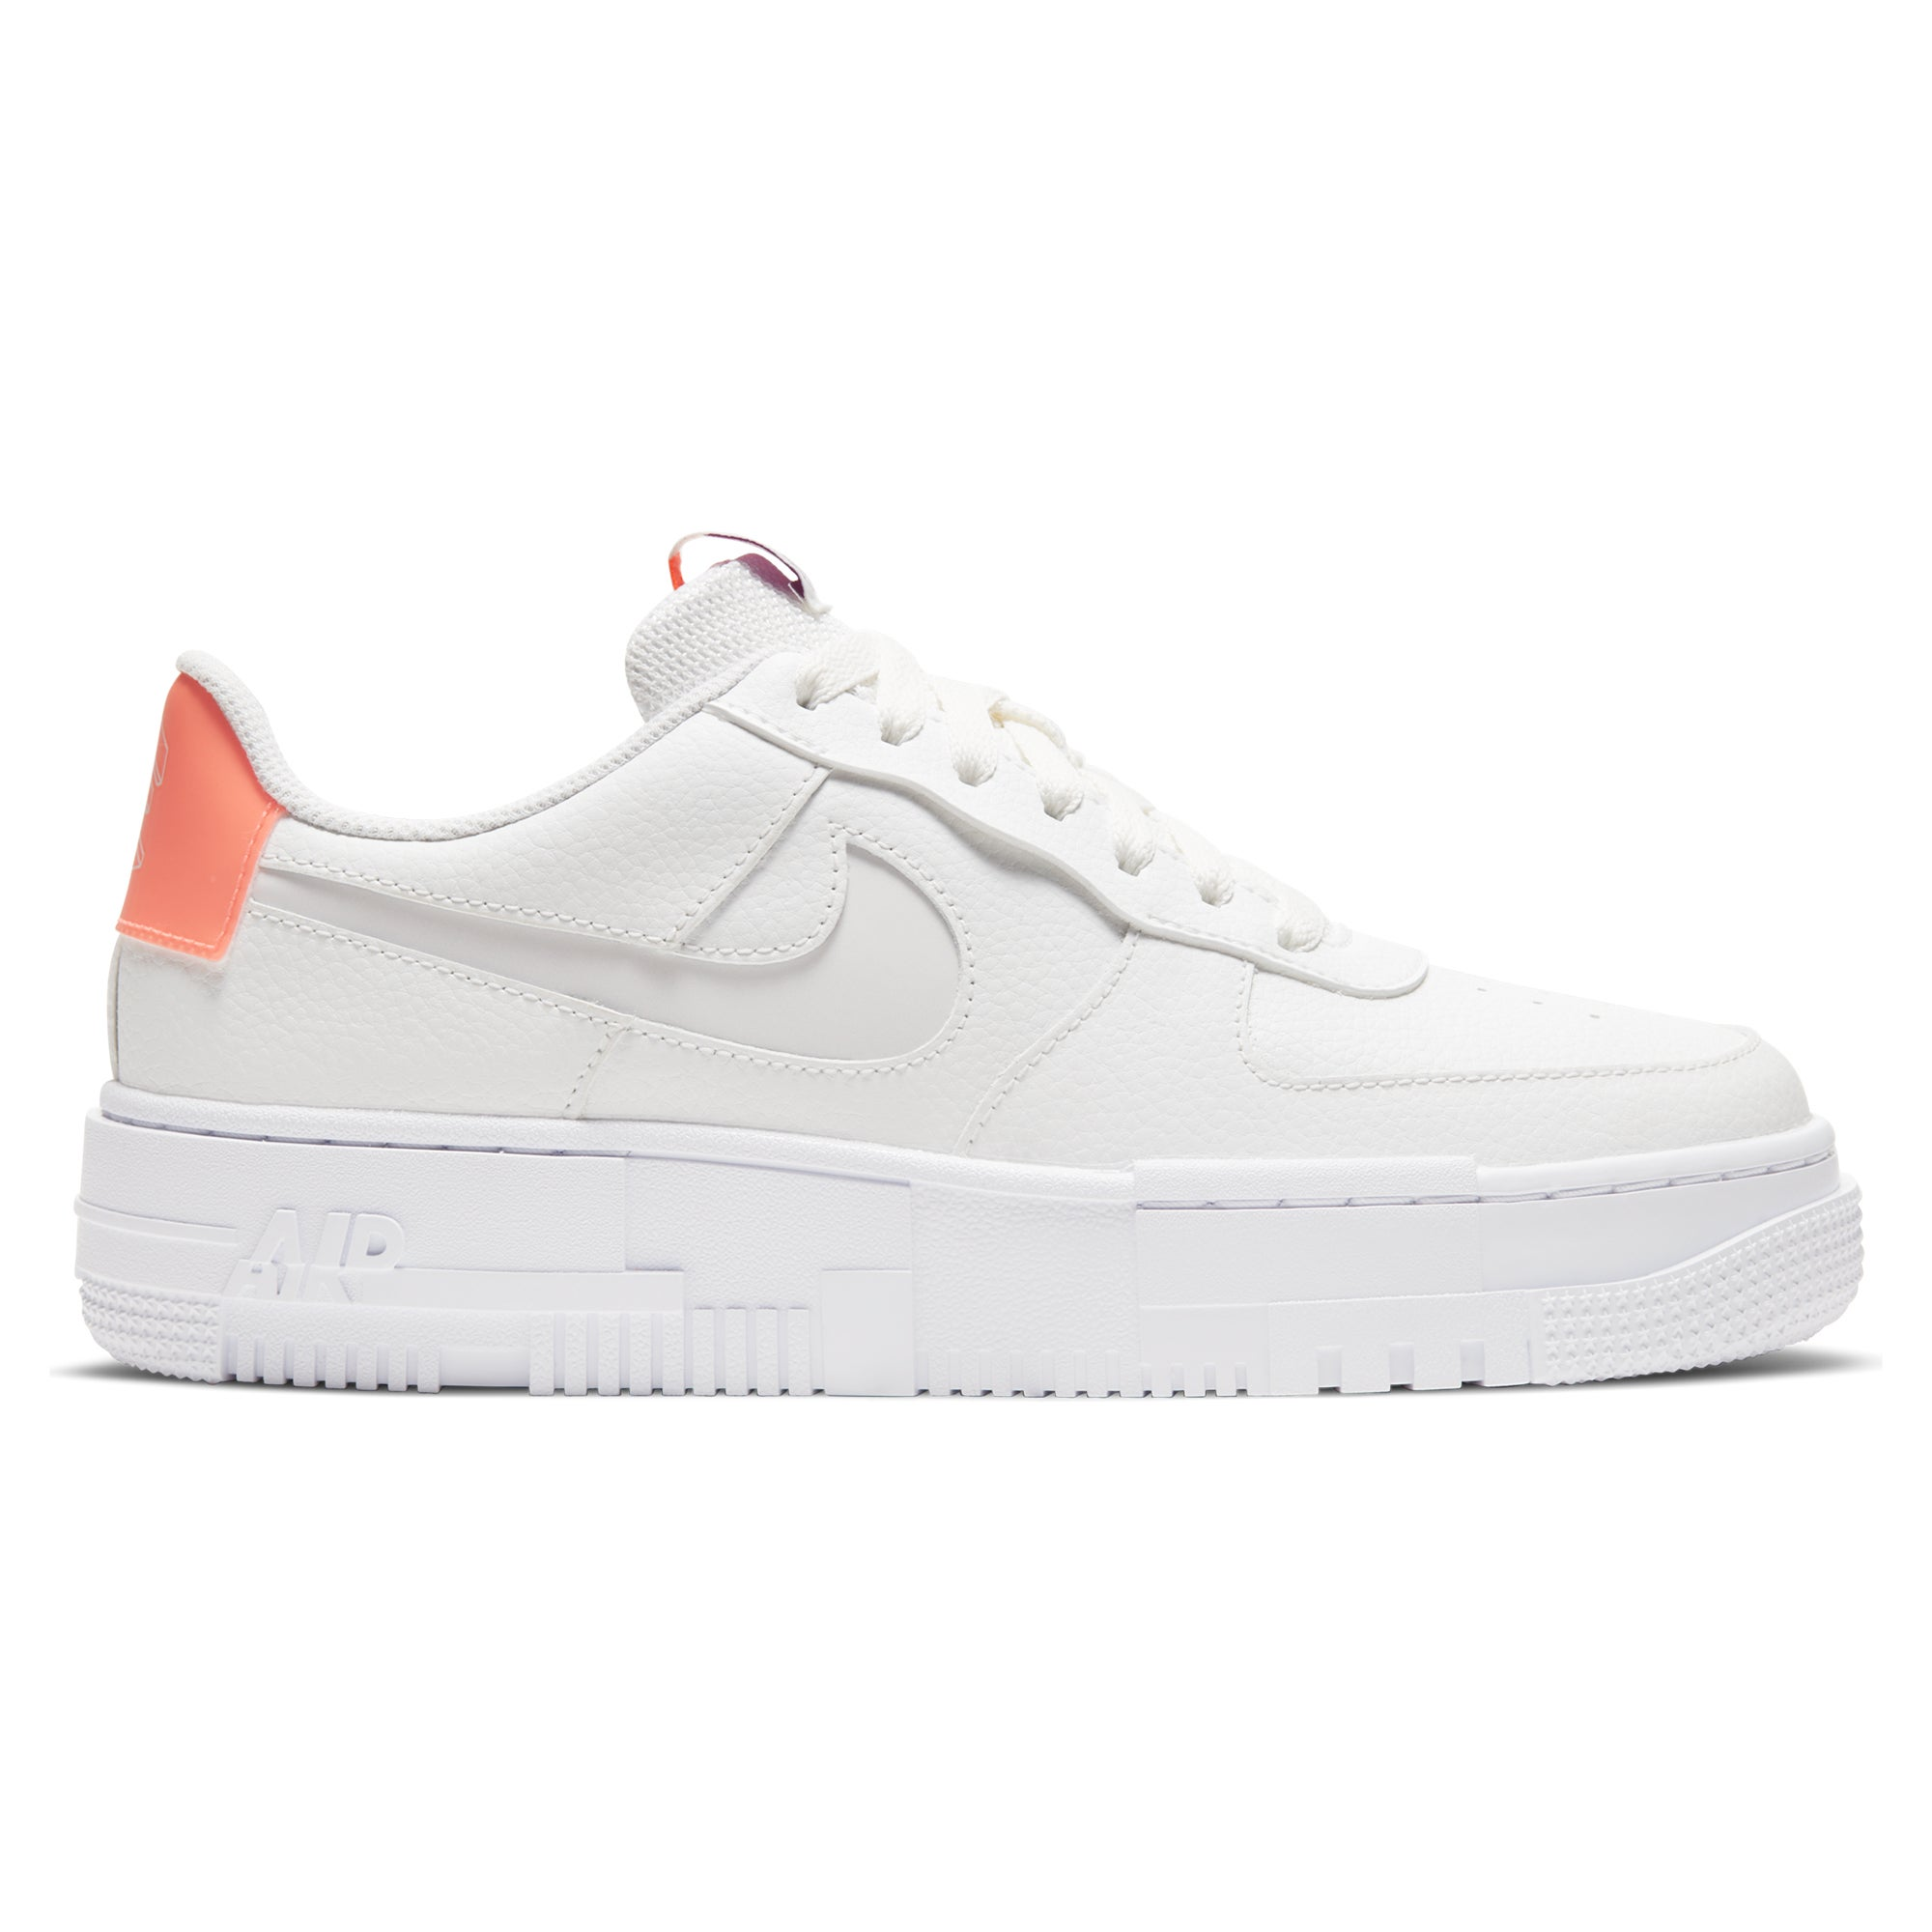 Shop Nike Air Force 1 Pixel Shoes